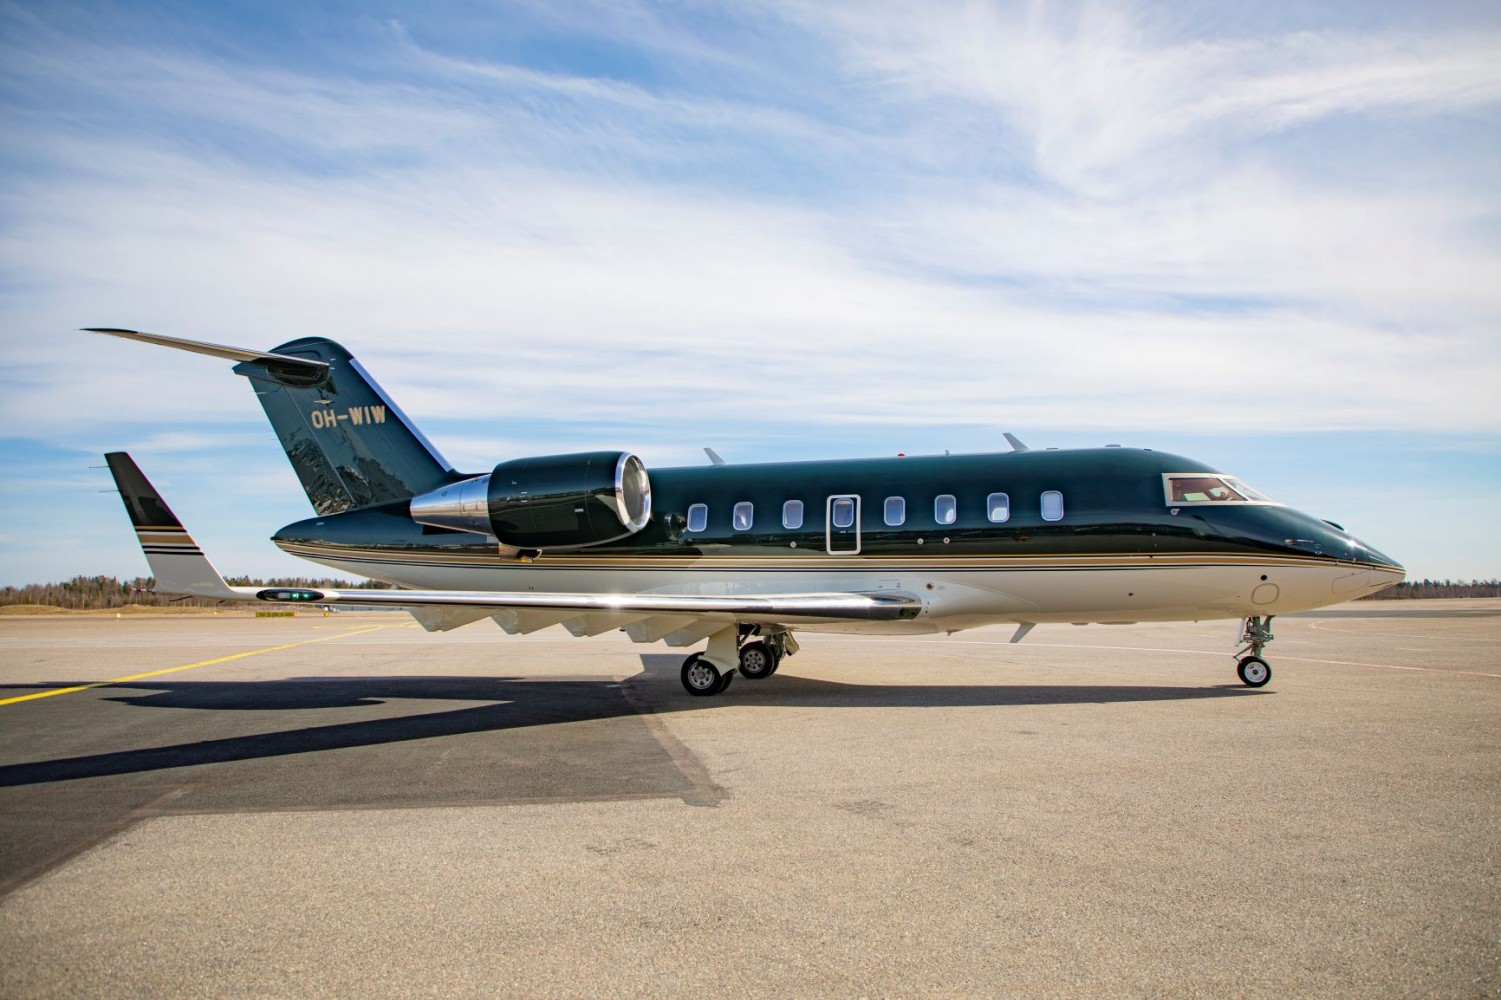 Challenger 650 aircraft, image courtesy of Jetflite.